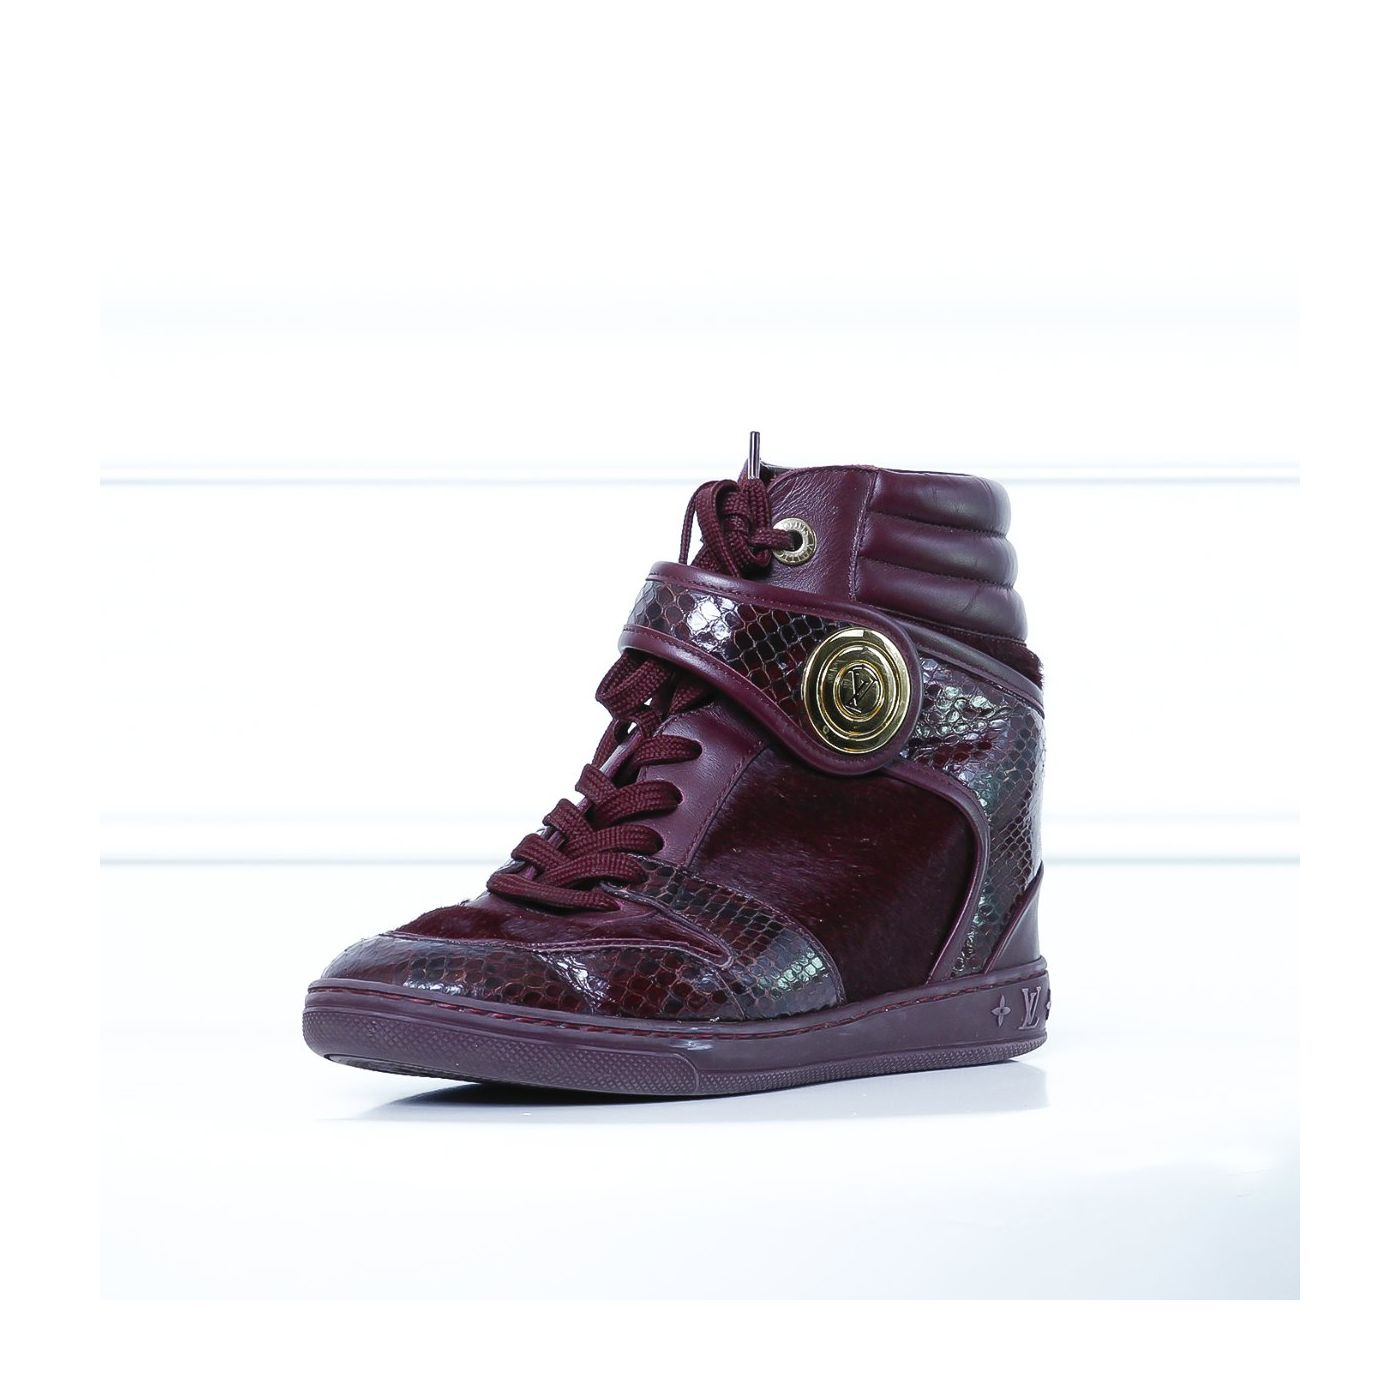 Louis Vuitton Dark Maroon Python High Cut Sneakers 37.5